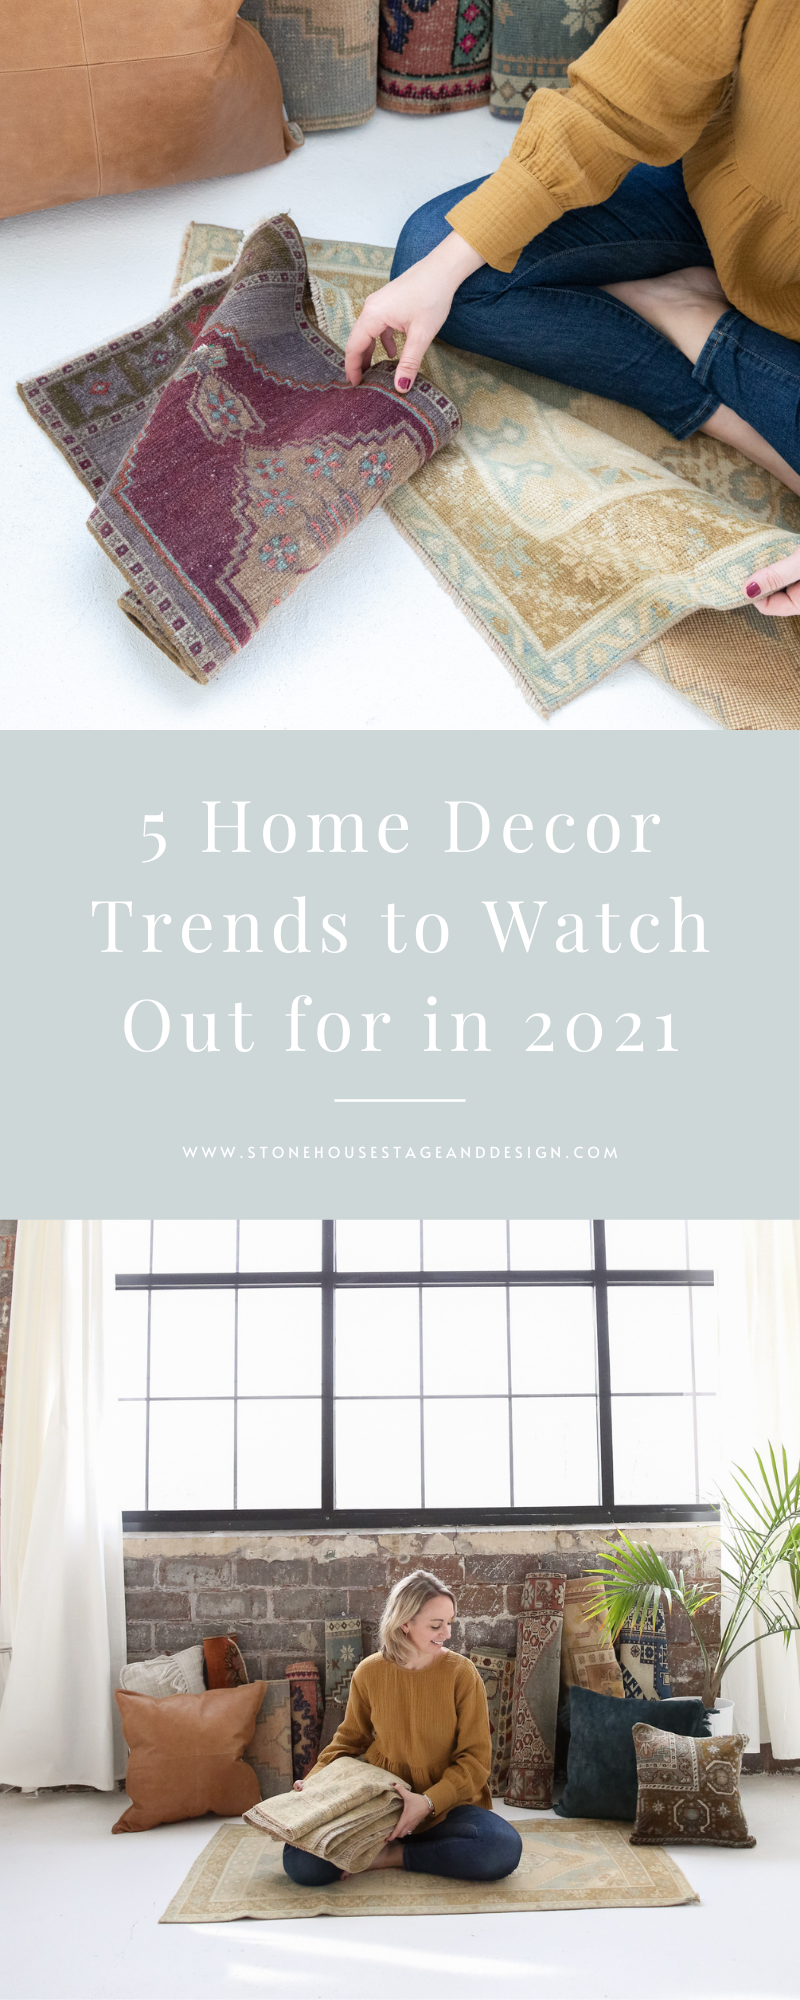 Home Decor Trends to Watch Out for in 2021